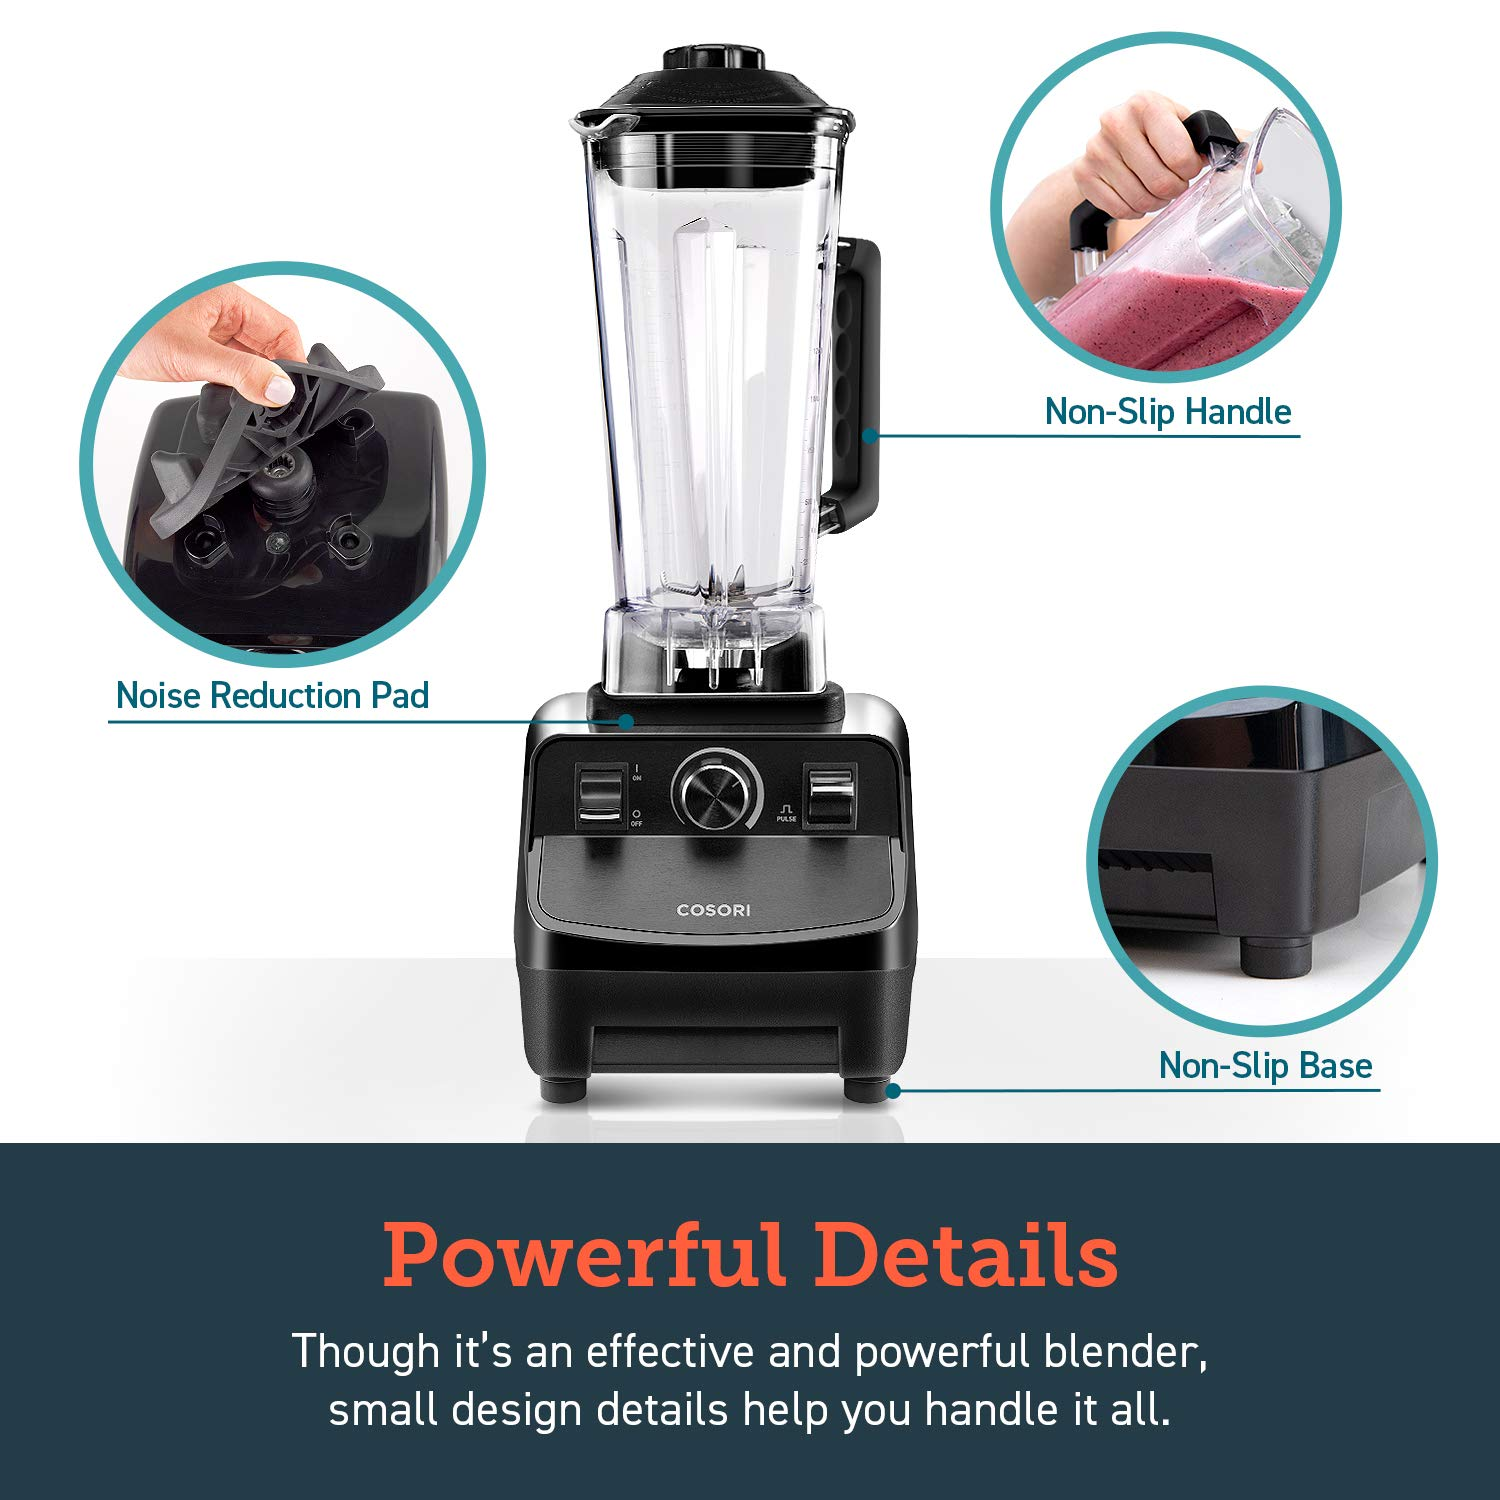 COSORI Blender for Shakes and Smoothies(50 Recipes),1400W Heavy Duty Professional Blender for Crushing Ice, Frozen Fruit with 64oz Pitcher&20oz Travel Bottle,2-Year Warranty,ETL Listed/FDA Compliant by COSORI (Image #5)